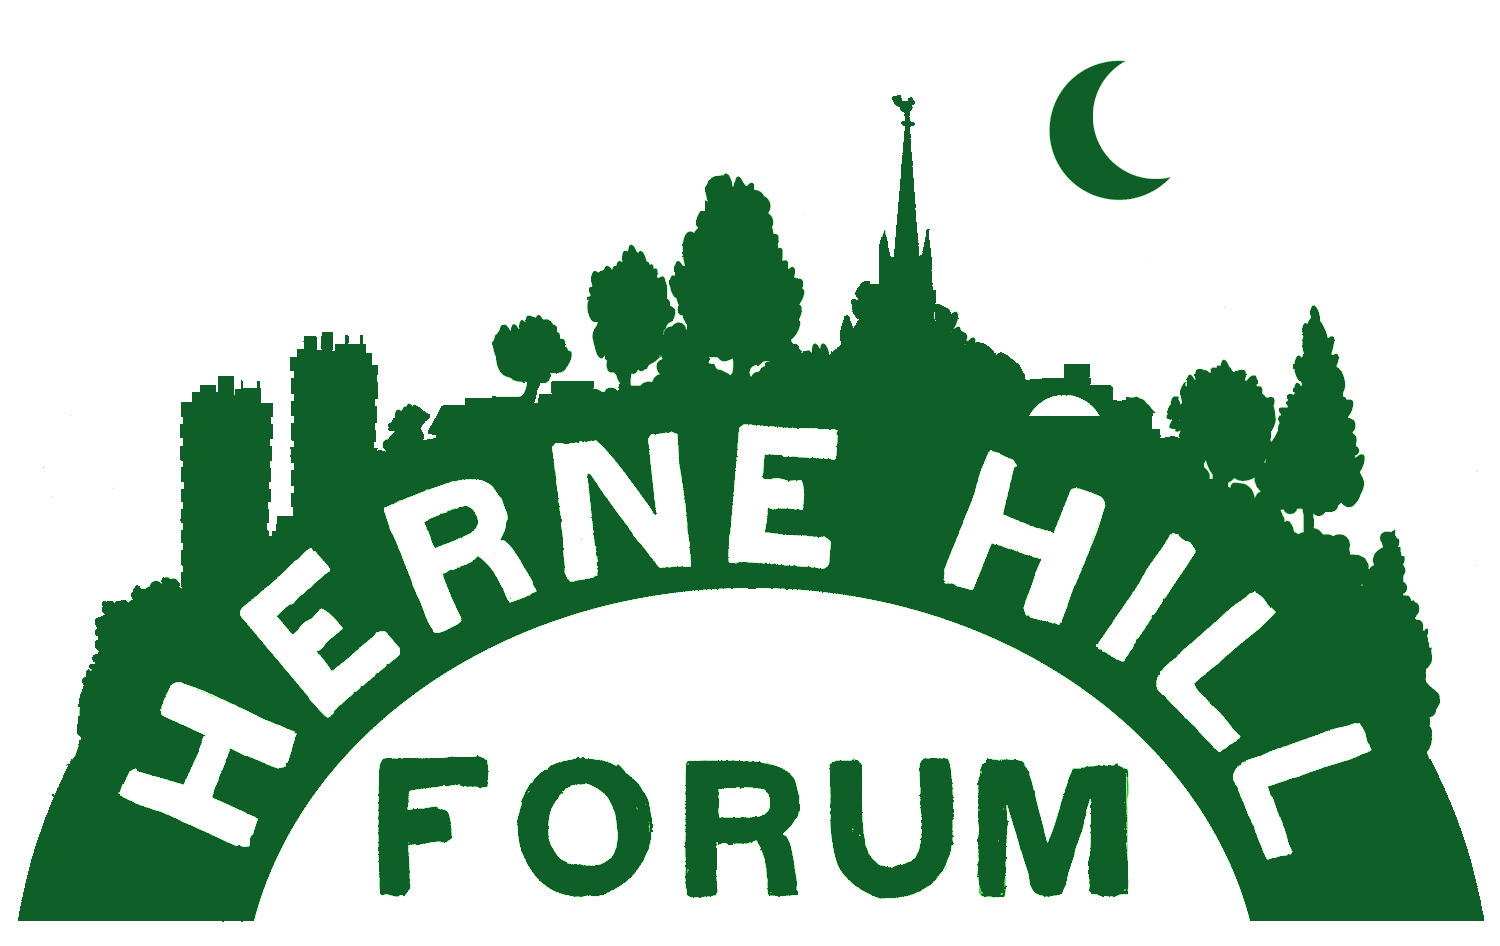 Herne Hill Forum: an online hub and forum, connecting the community of Herne Hill and SE24